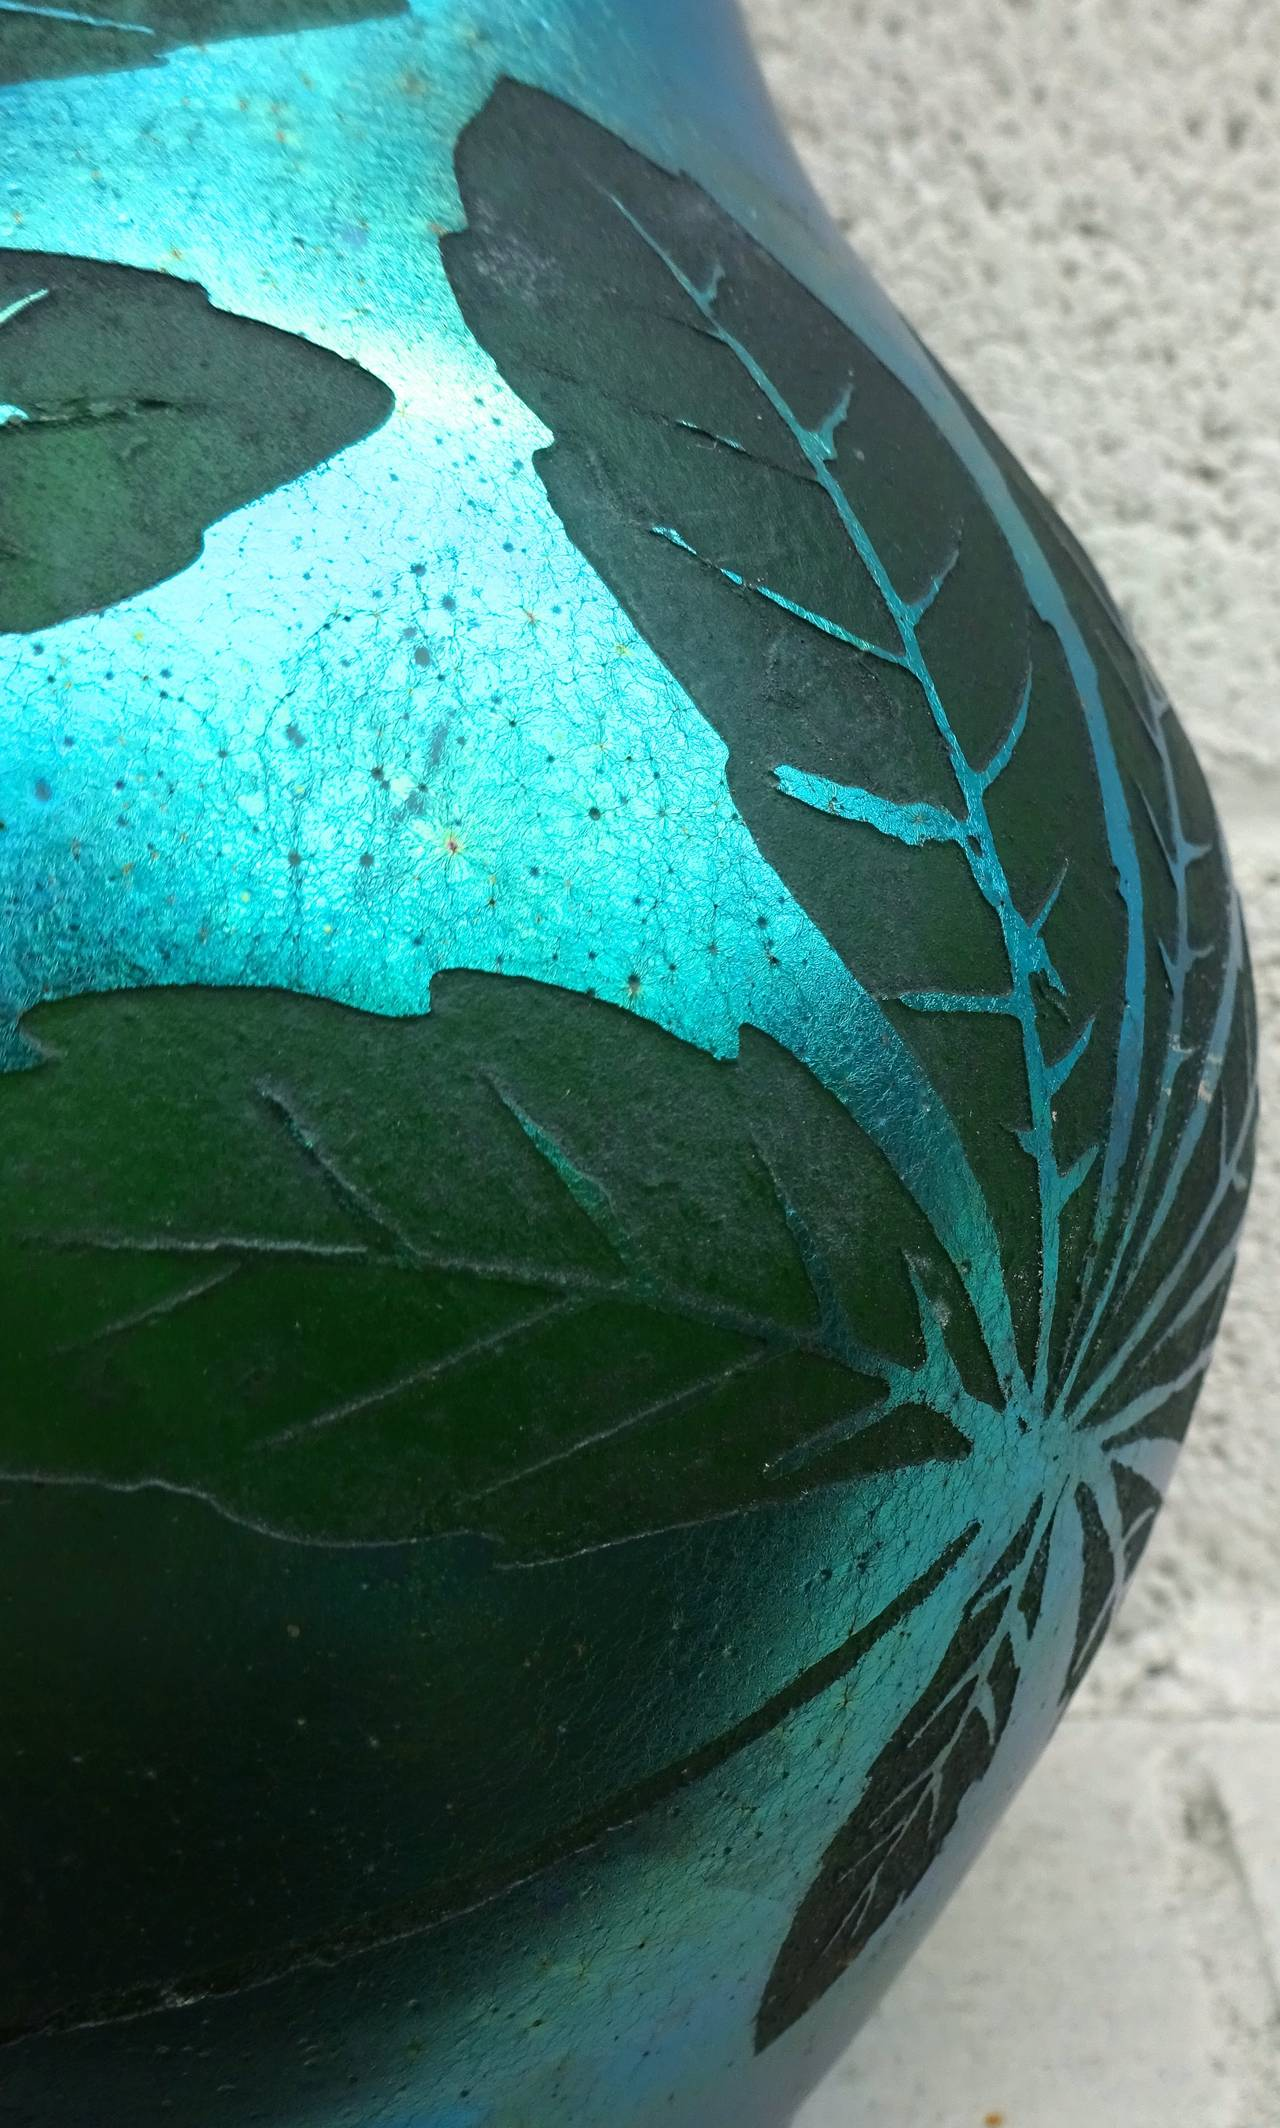 Stunning French Deco iridescent acid etched art glass vase, 1920s.